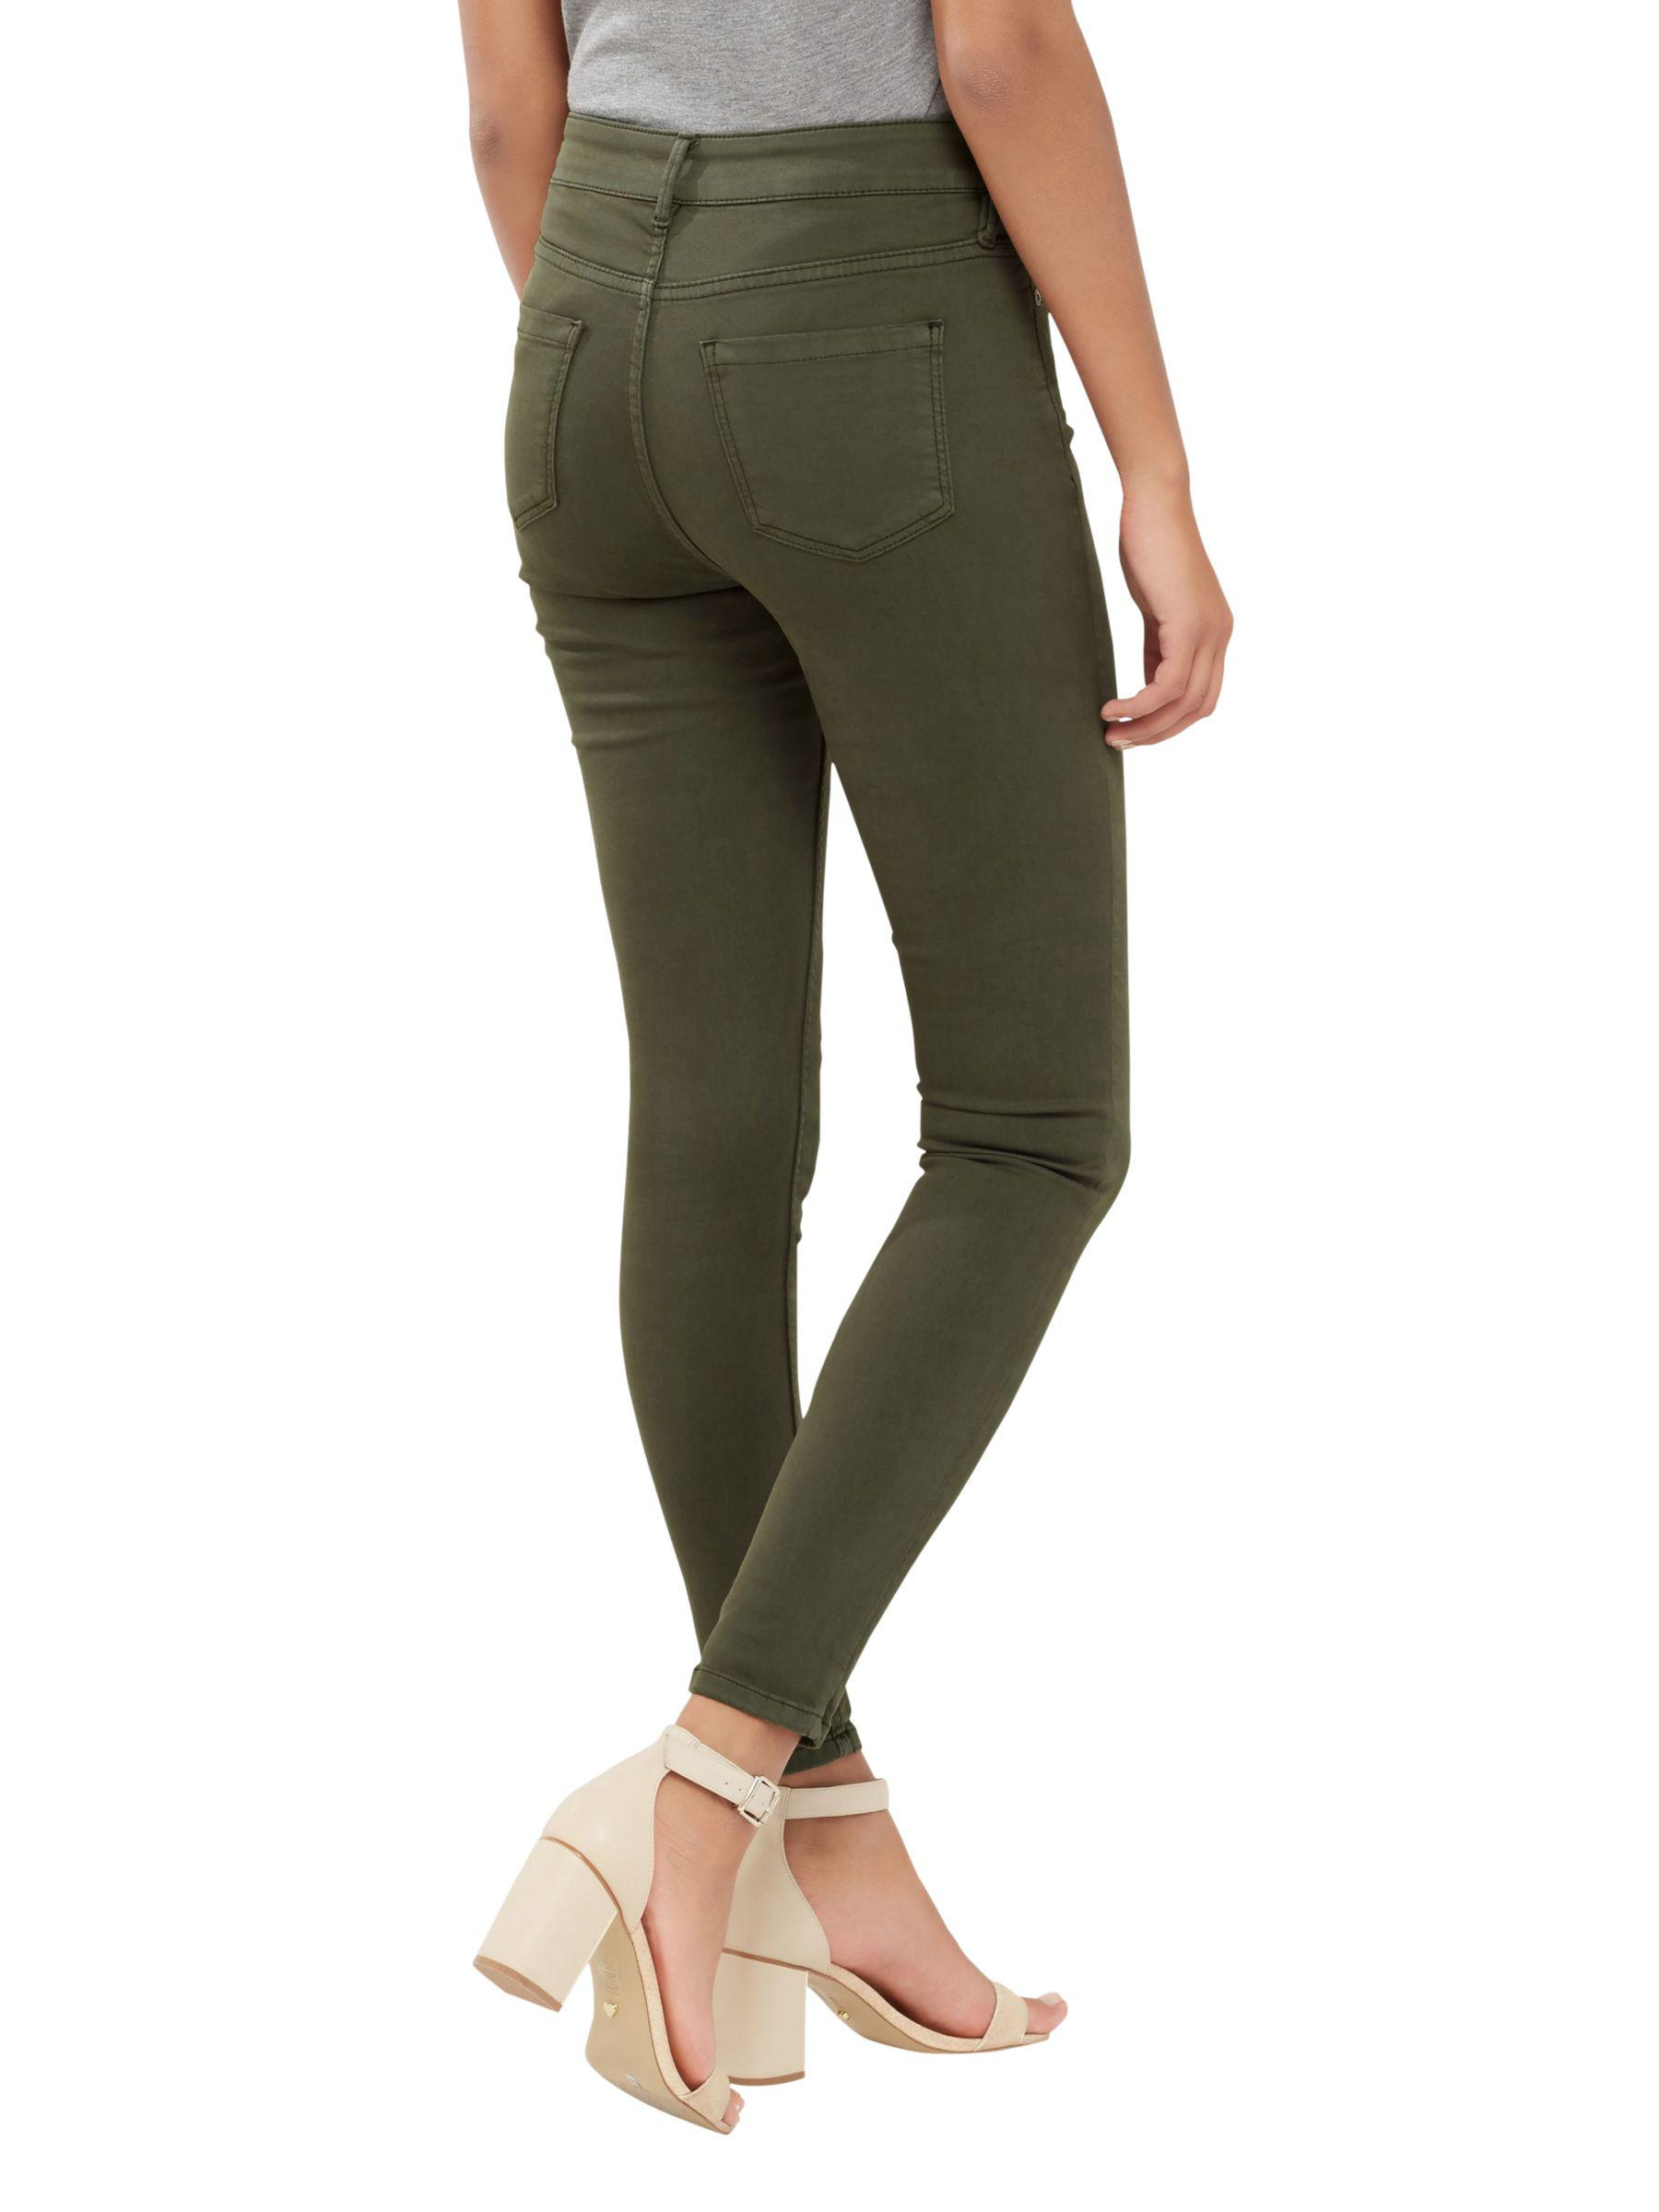 4464549f13fb Gallery. Women's High Waisted Jeans Women's White Skinny ...